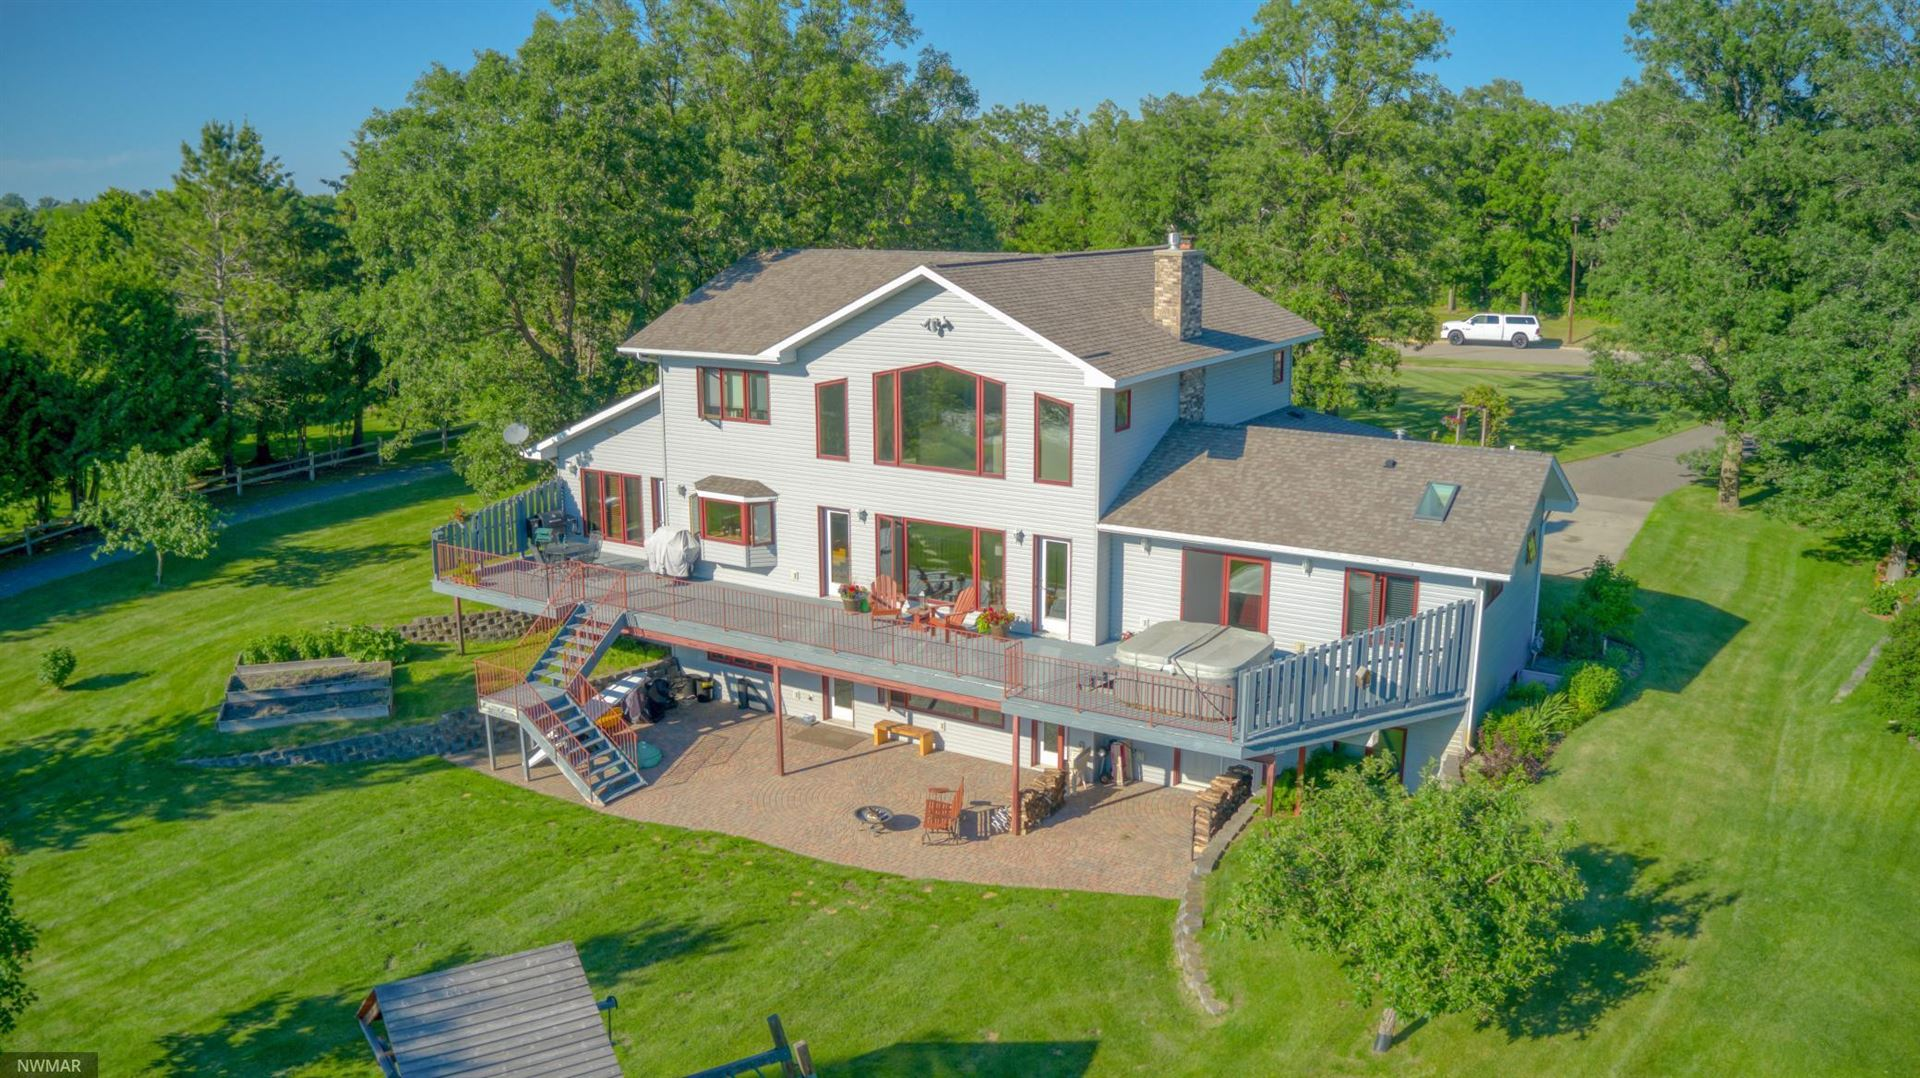 529 Irving Beach Drive SW, Bemidji, MN 56601 - MLS#: 5613638